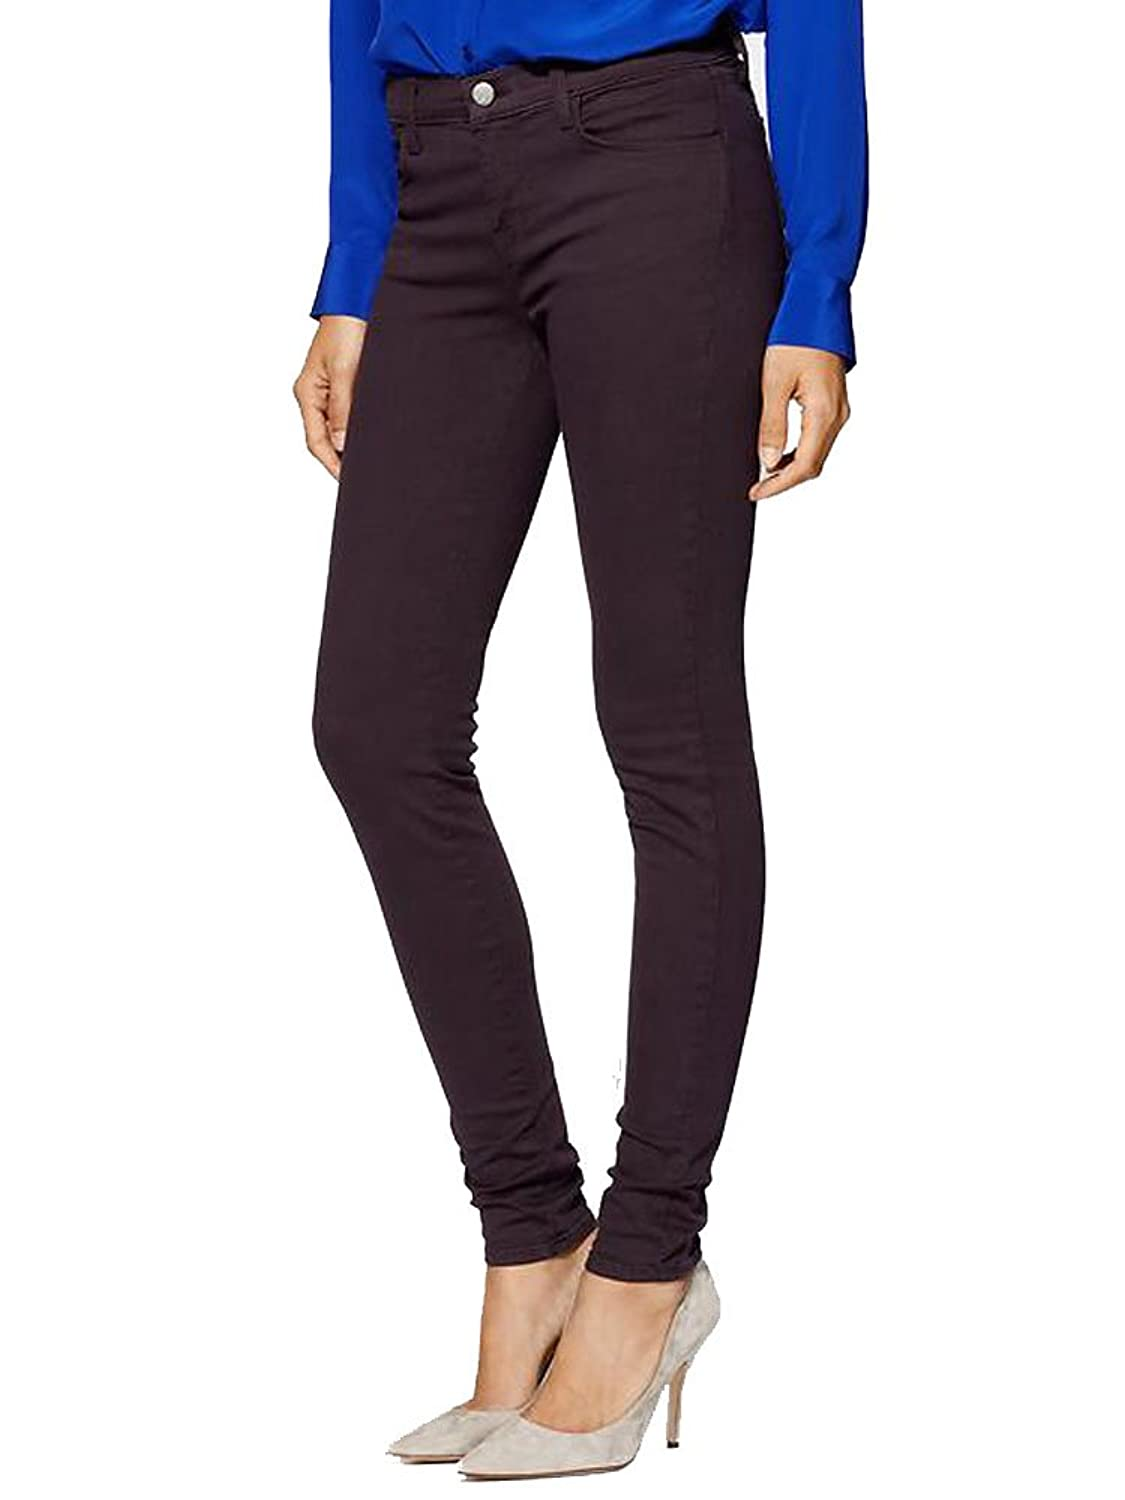 J Brand, Mid-Rise Super Skinny Jeans, Vin Mulberry, Size 32